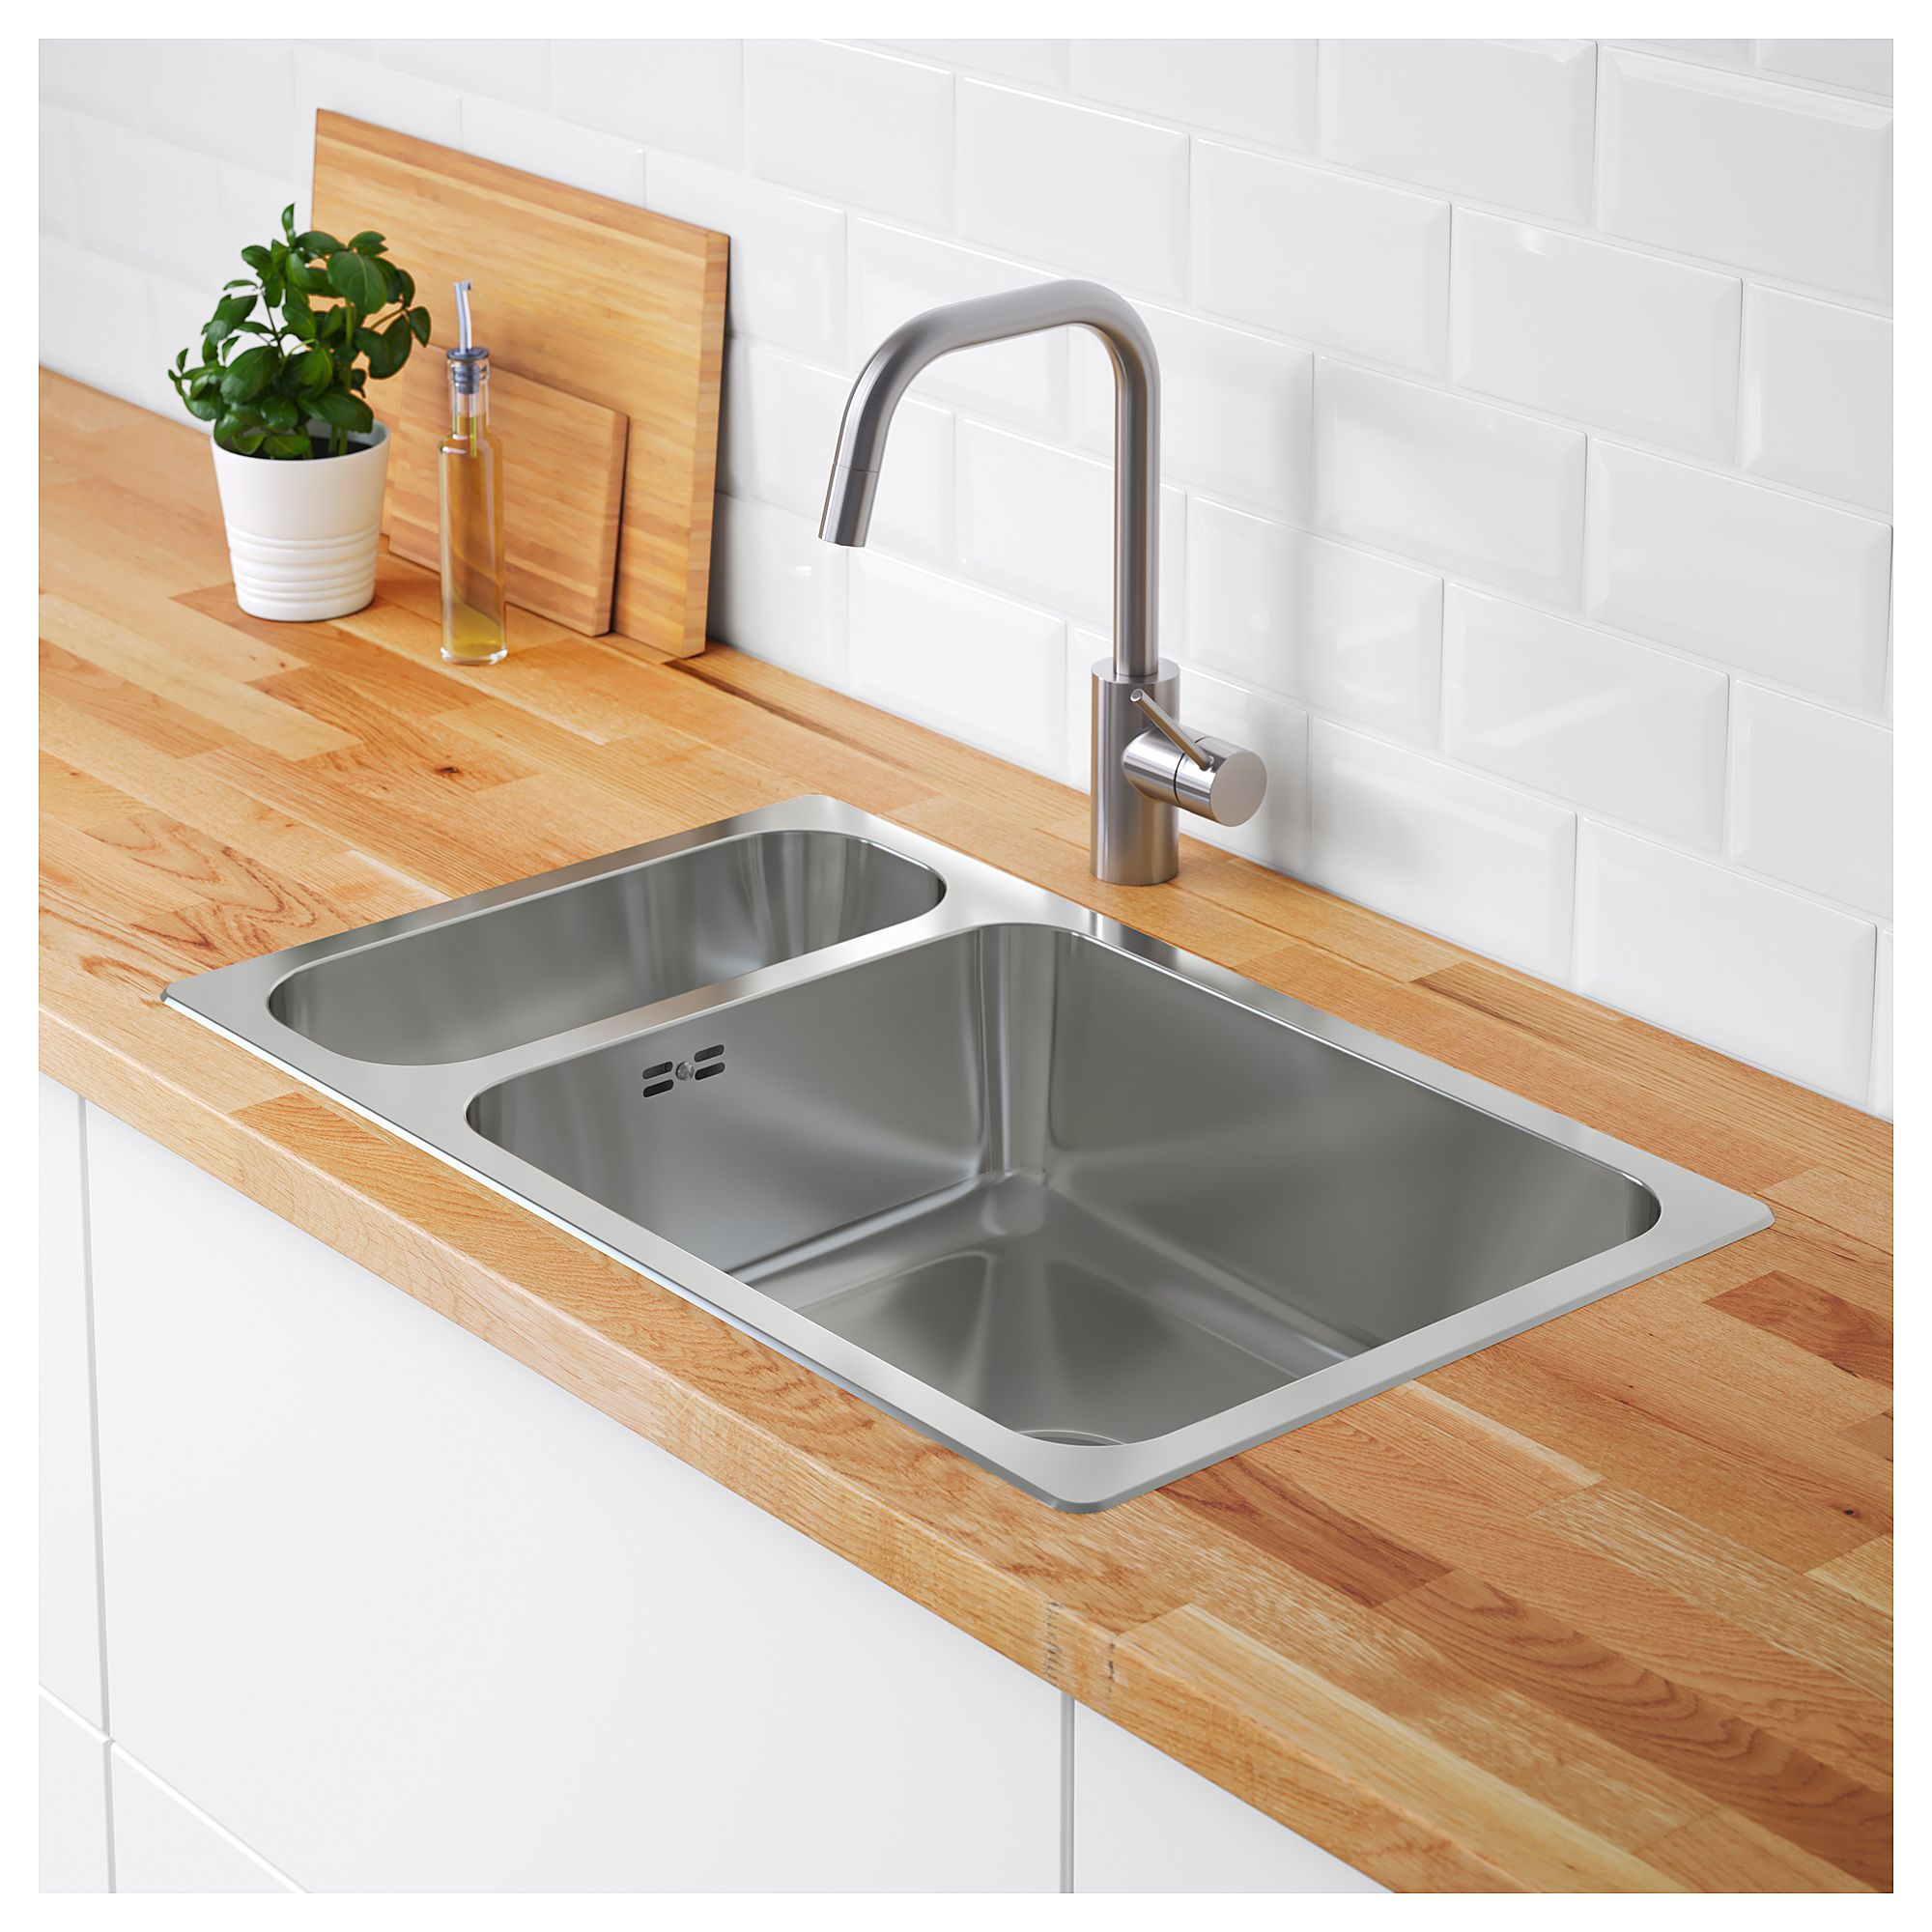 Image result for ikea inset sink | House | Pinterest | Sinks and House